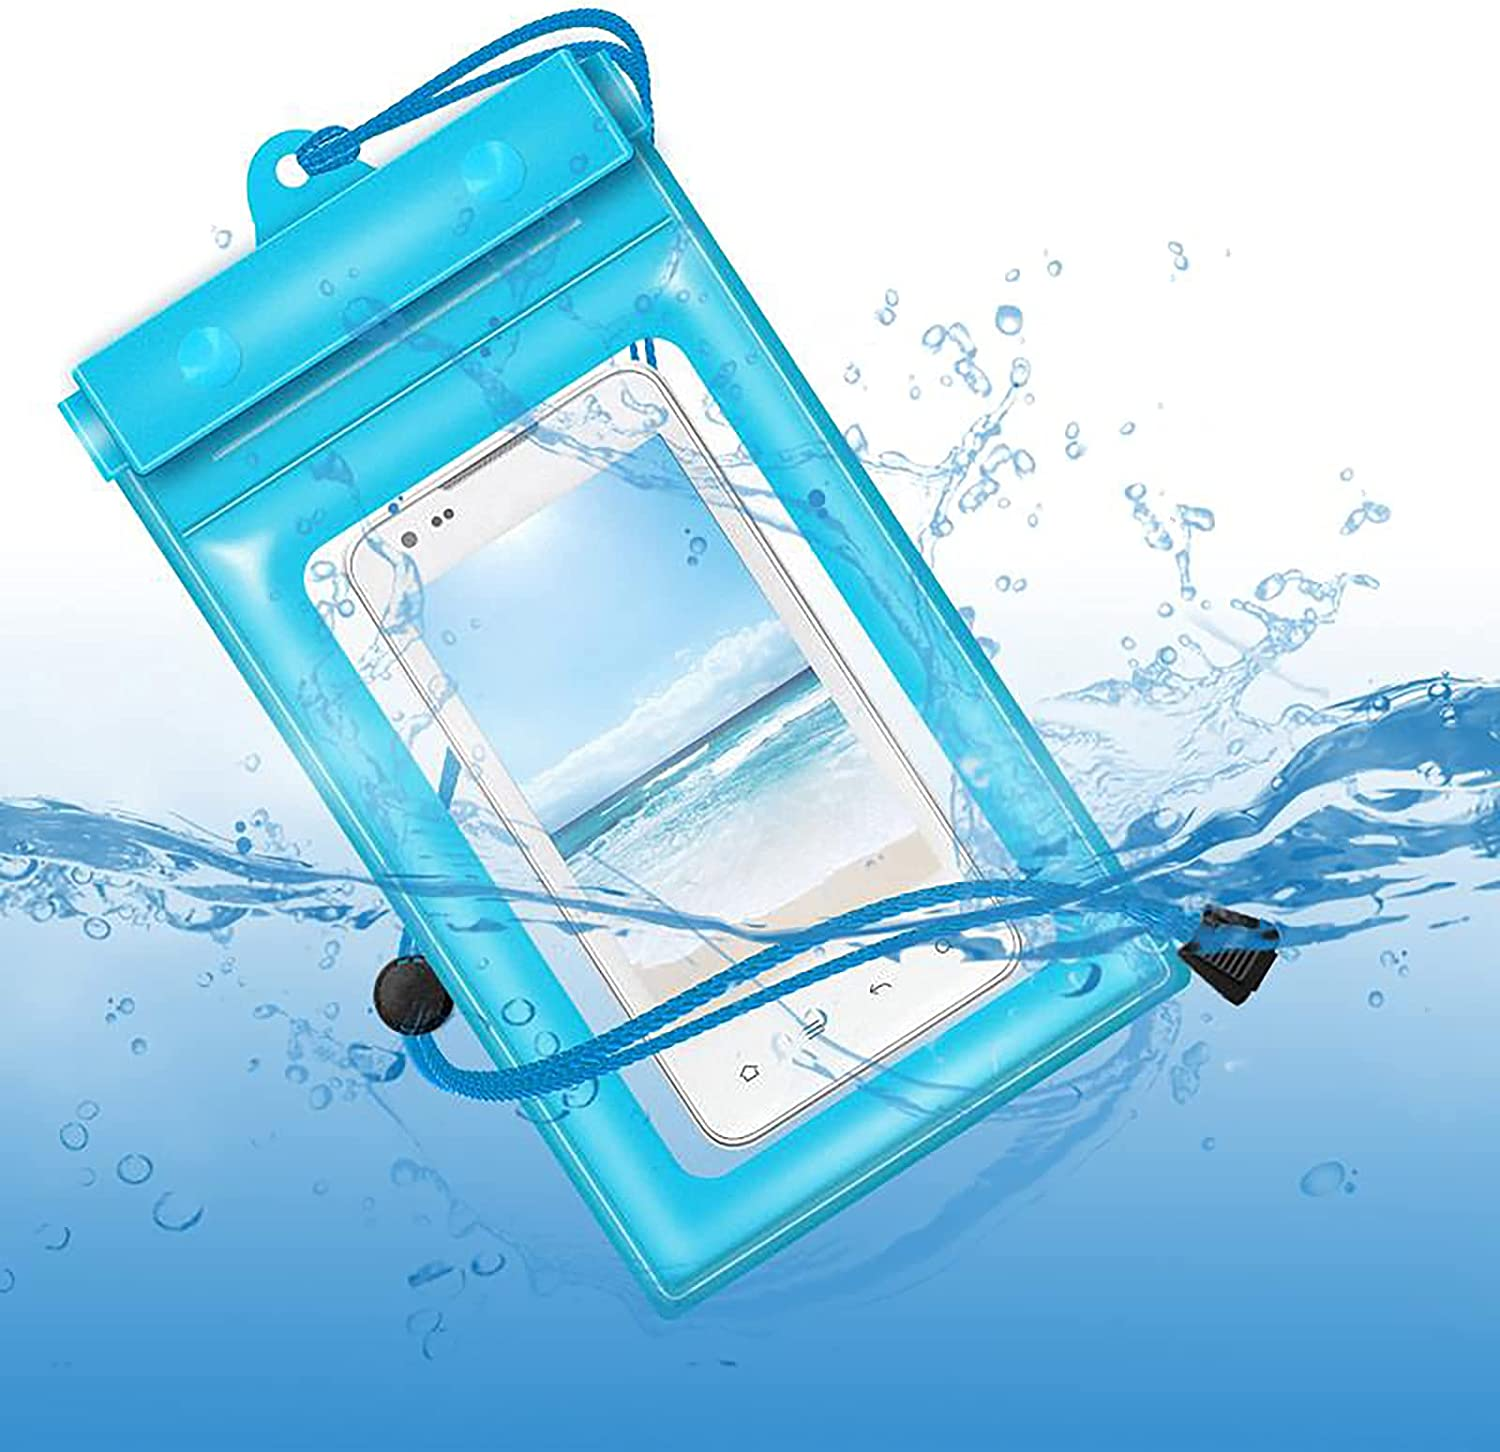 Waterproof Phone Pouch Floating, Universal Waterproof Case Compatible Underwater Dry Bag with Lanyard for iPhone Xs Max/XR/X/8/7 Plus Galaxy Pixel Up to 6.5